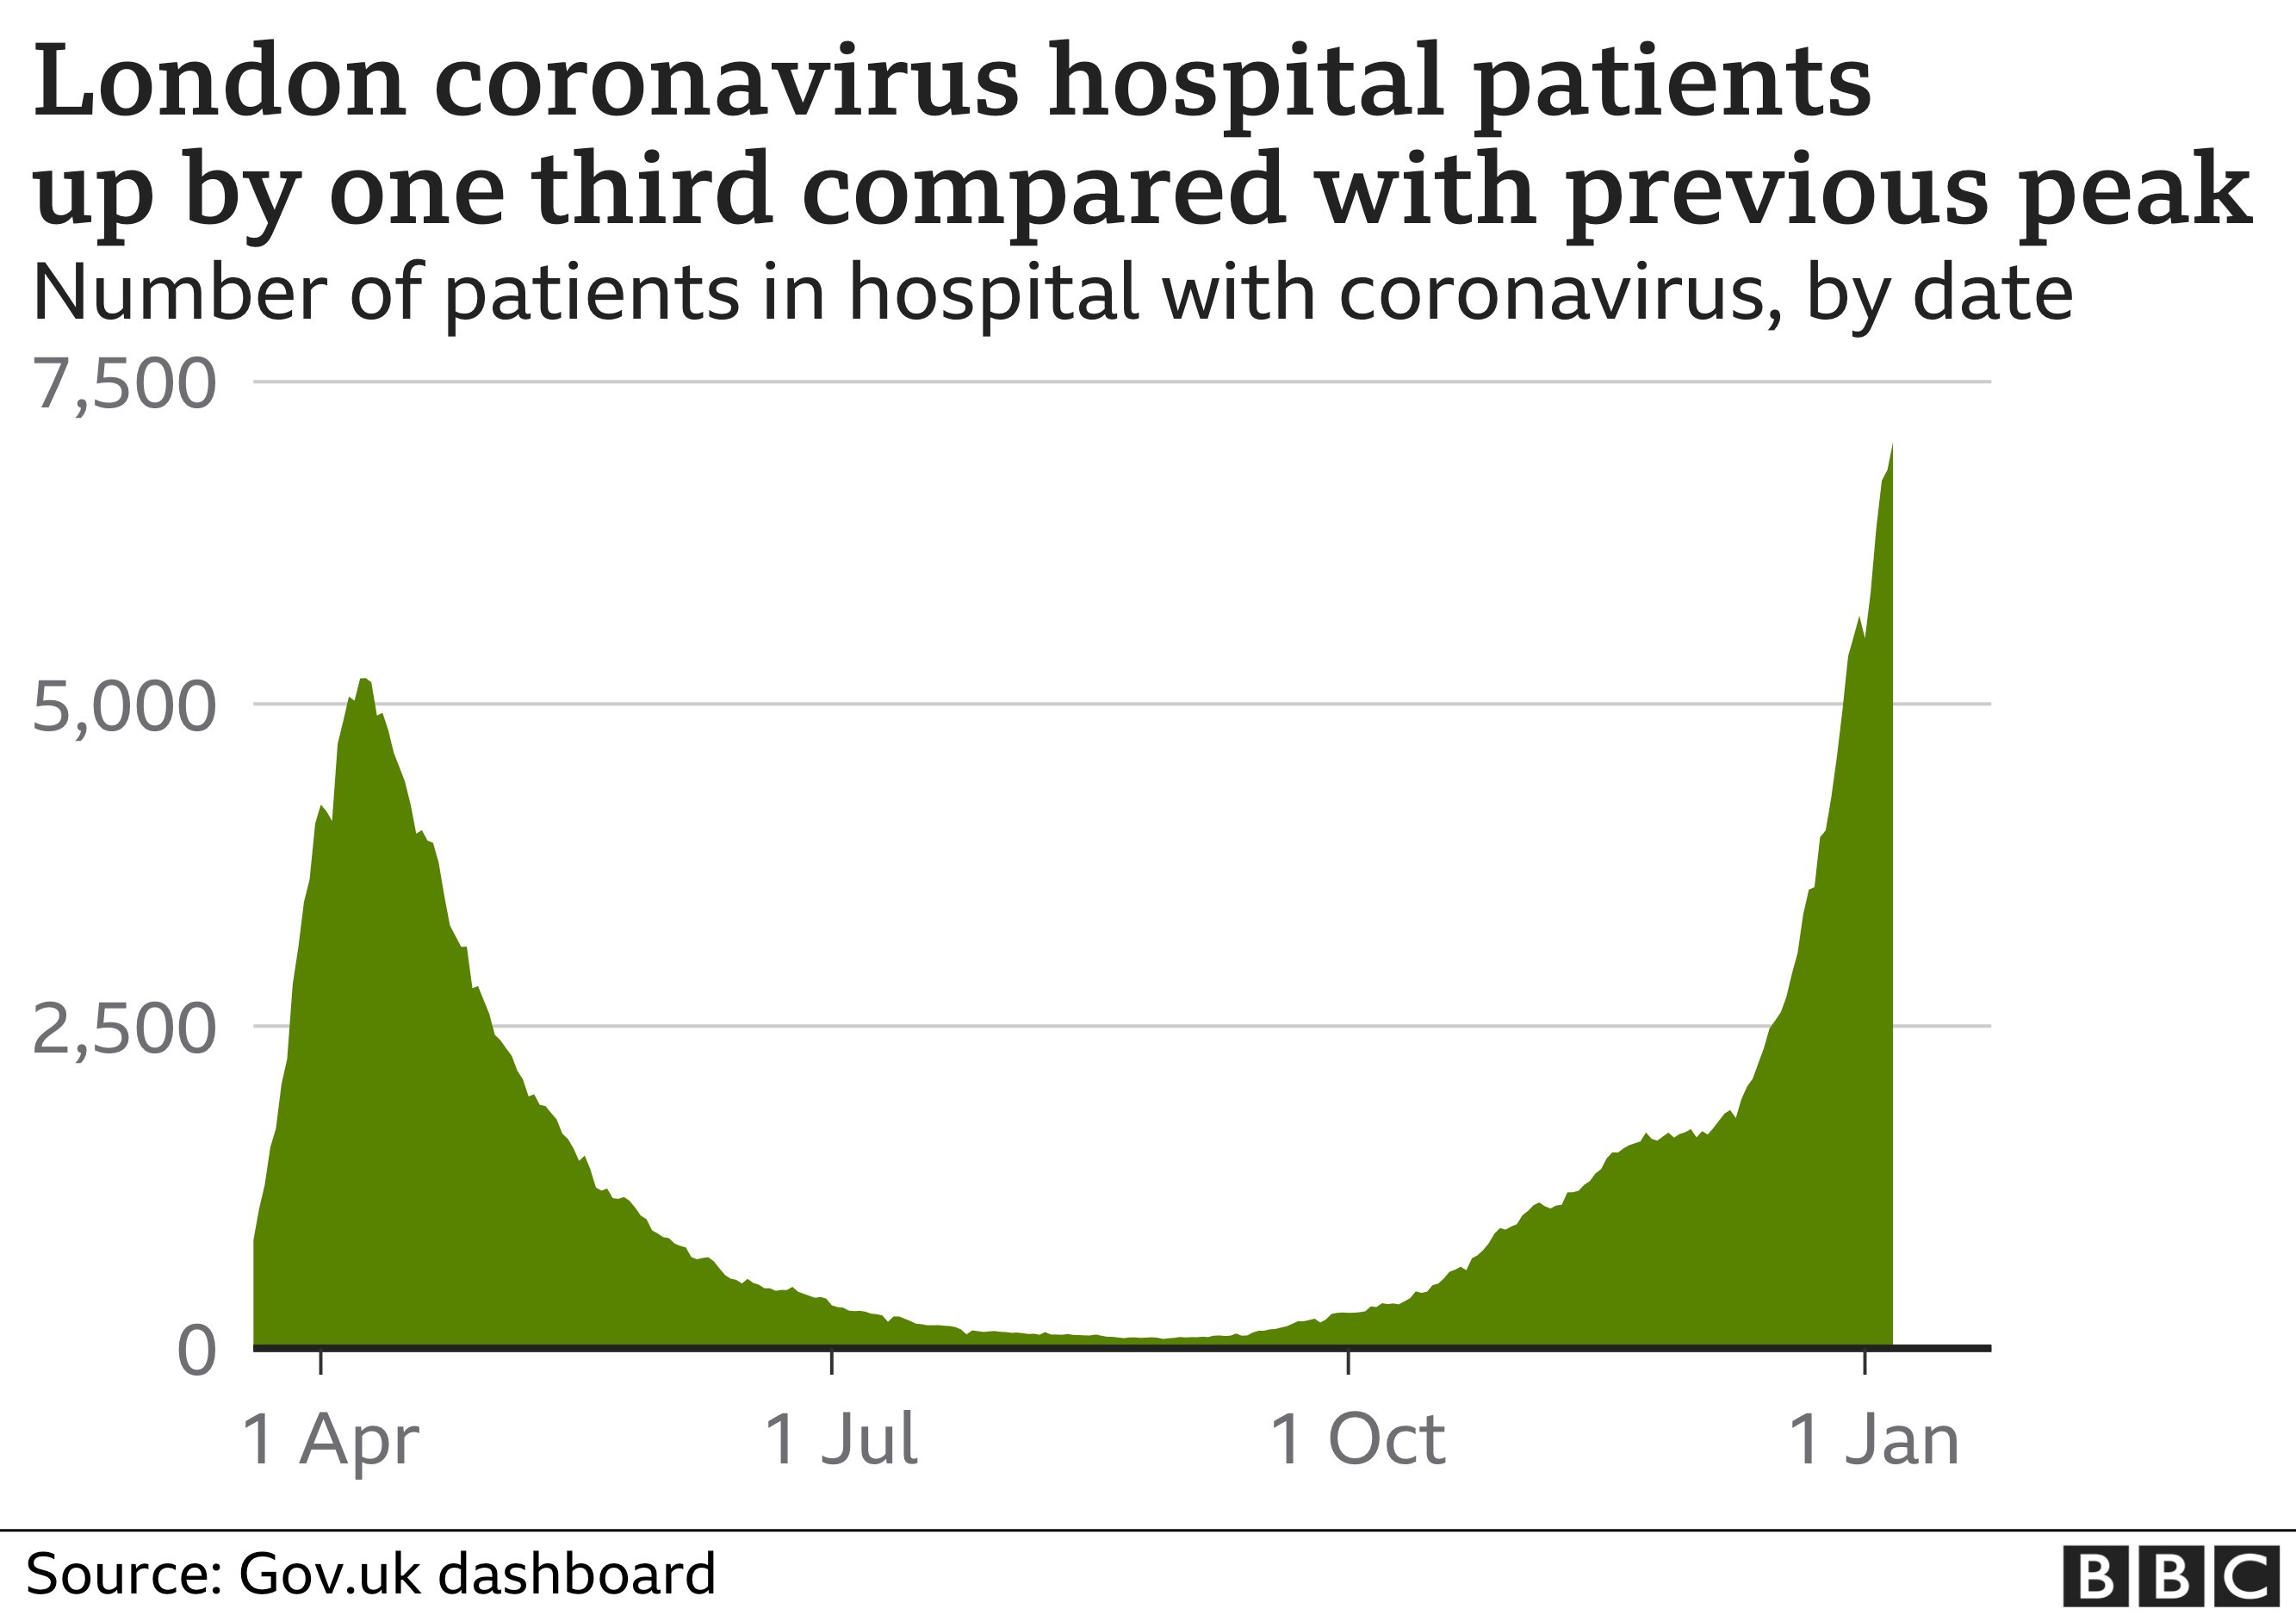 Chart showing the number of coronavirus hospital patients in london